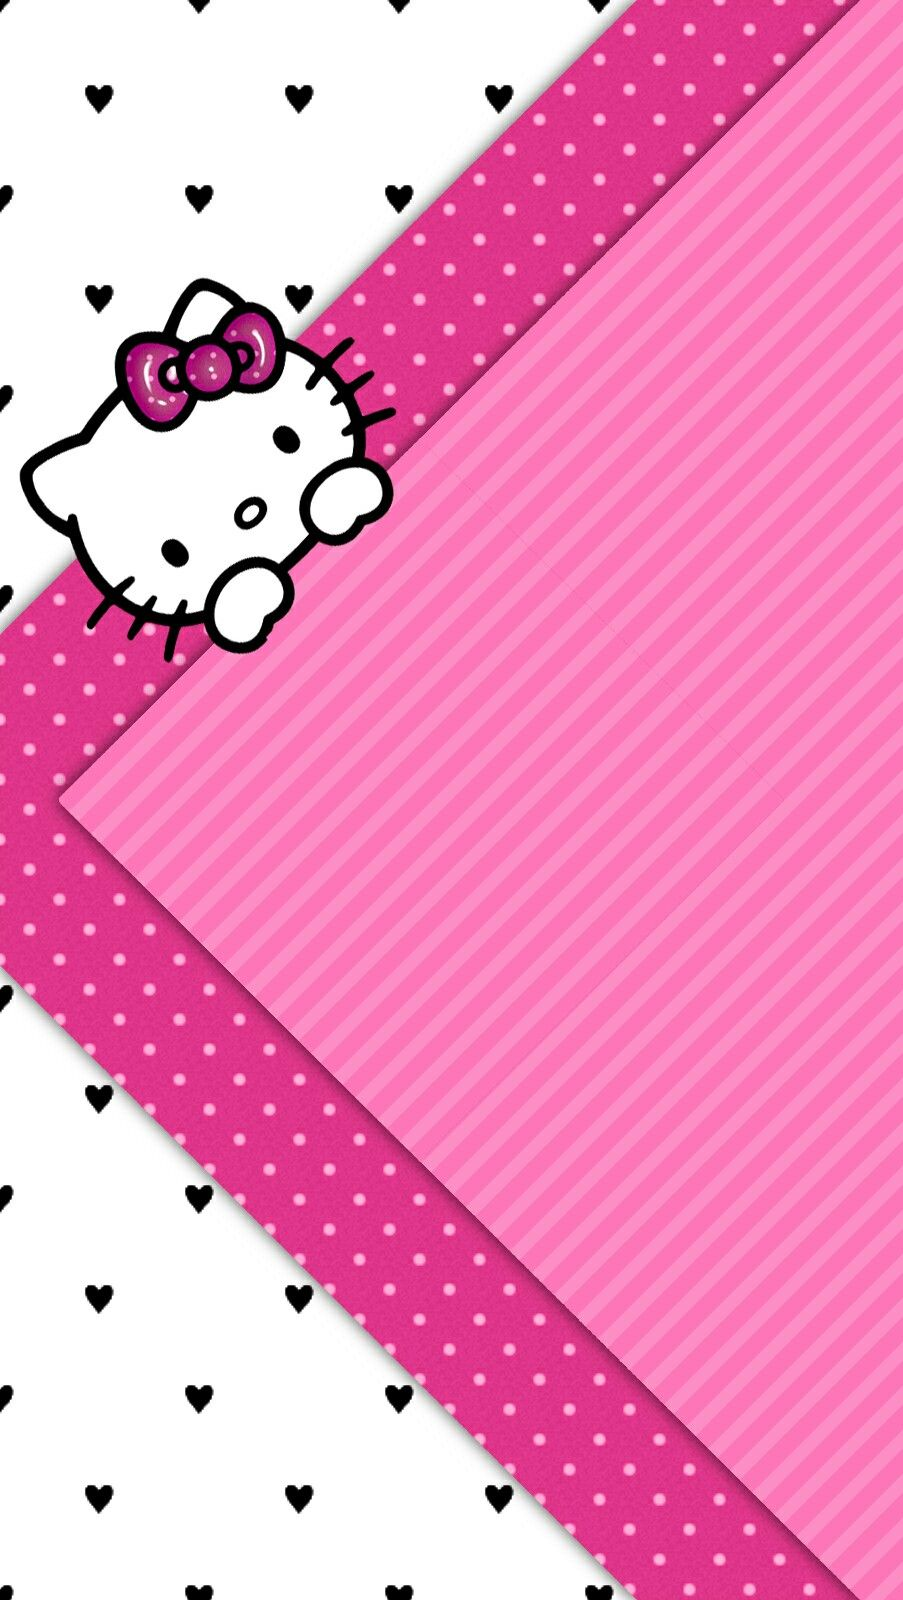 Free Download Hk Wallpaper Iphone Background Hello Kitty